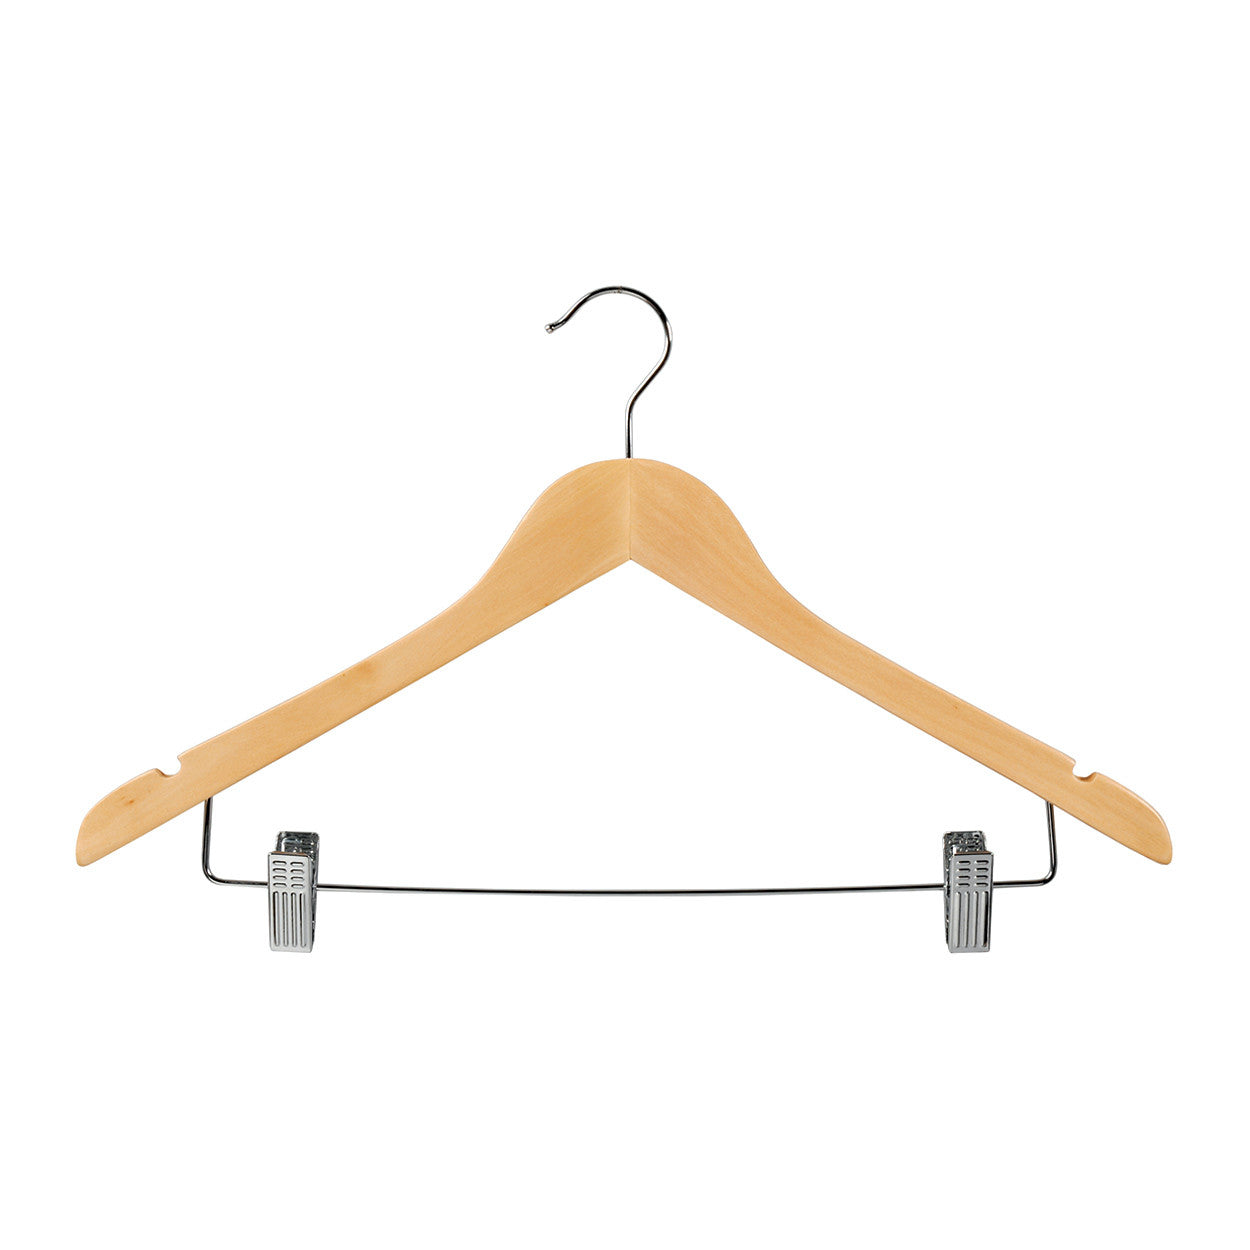 Beech Wooden hanger with notches & adjustable clips 440 W x 14 mm Thick (Box of 100) H2631BH-100